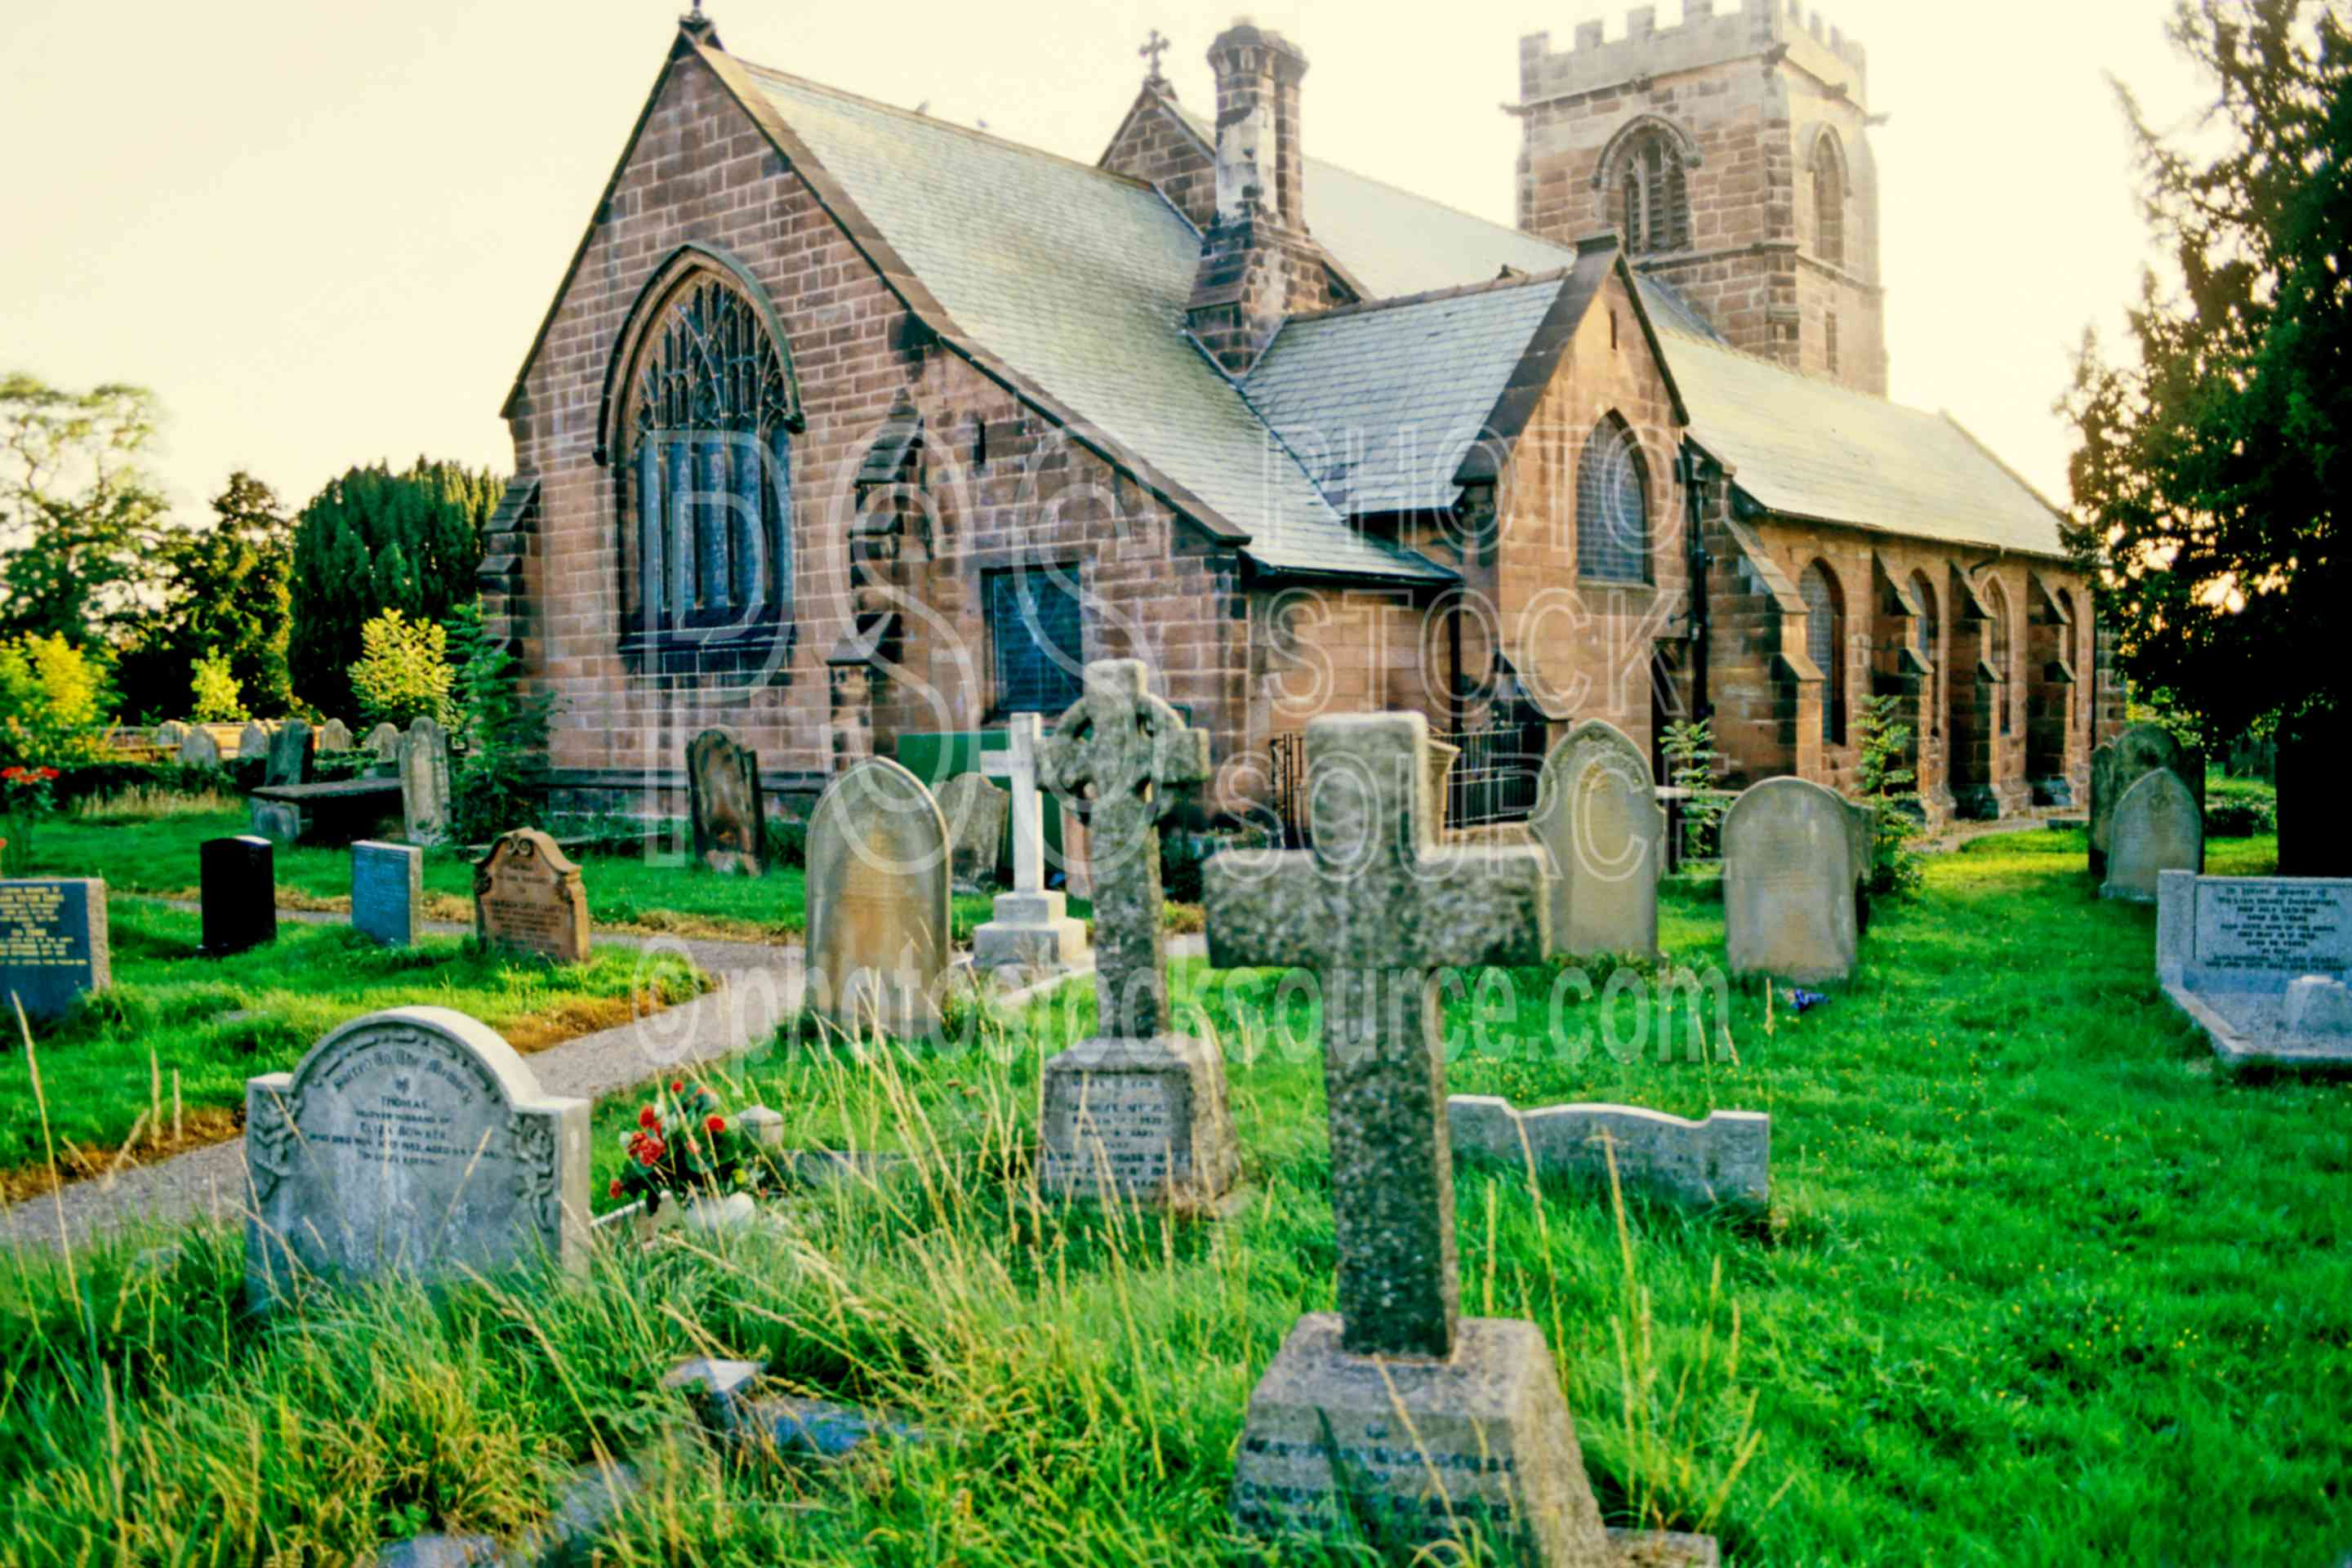 Church Graveyard,church,europe,graveyard,tombstone,england churches,cemeteries